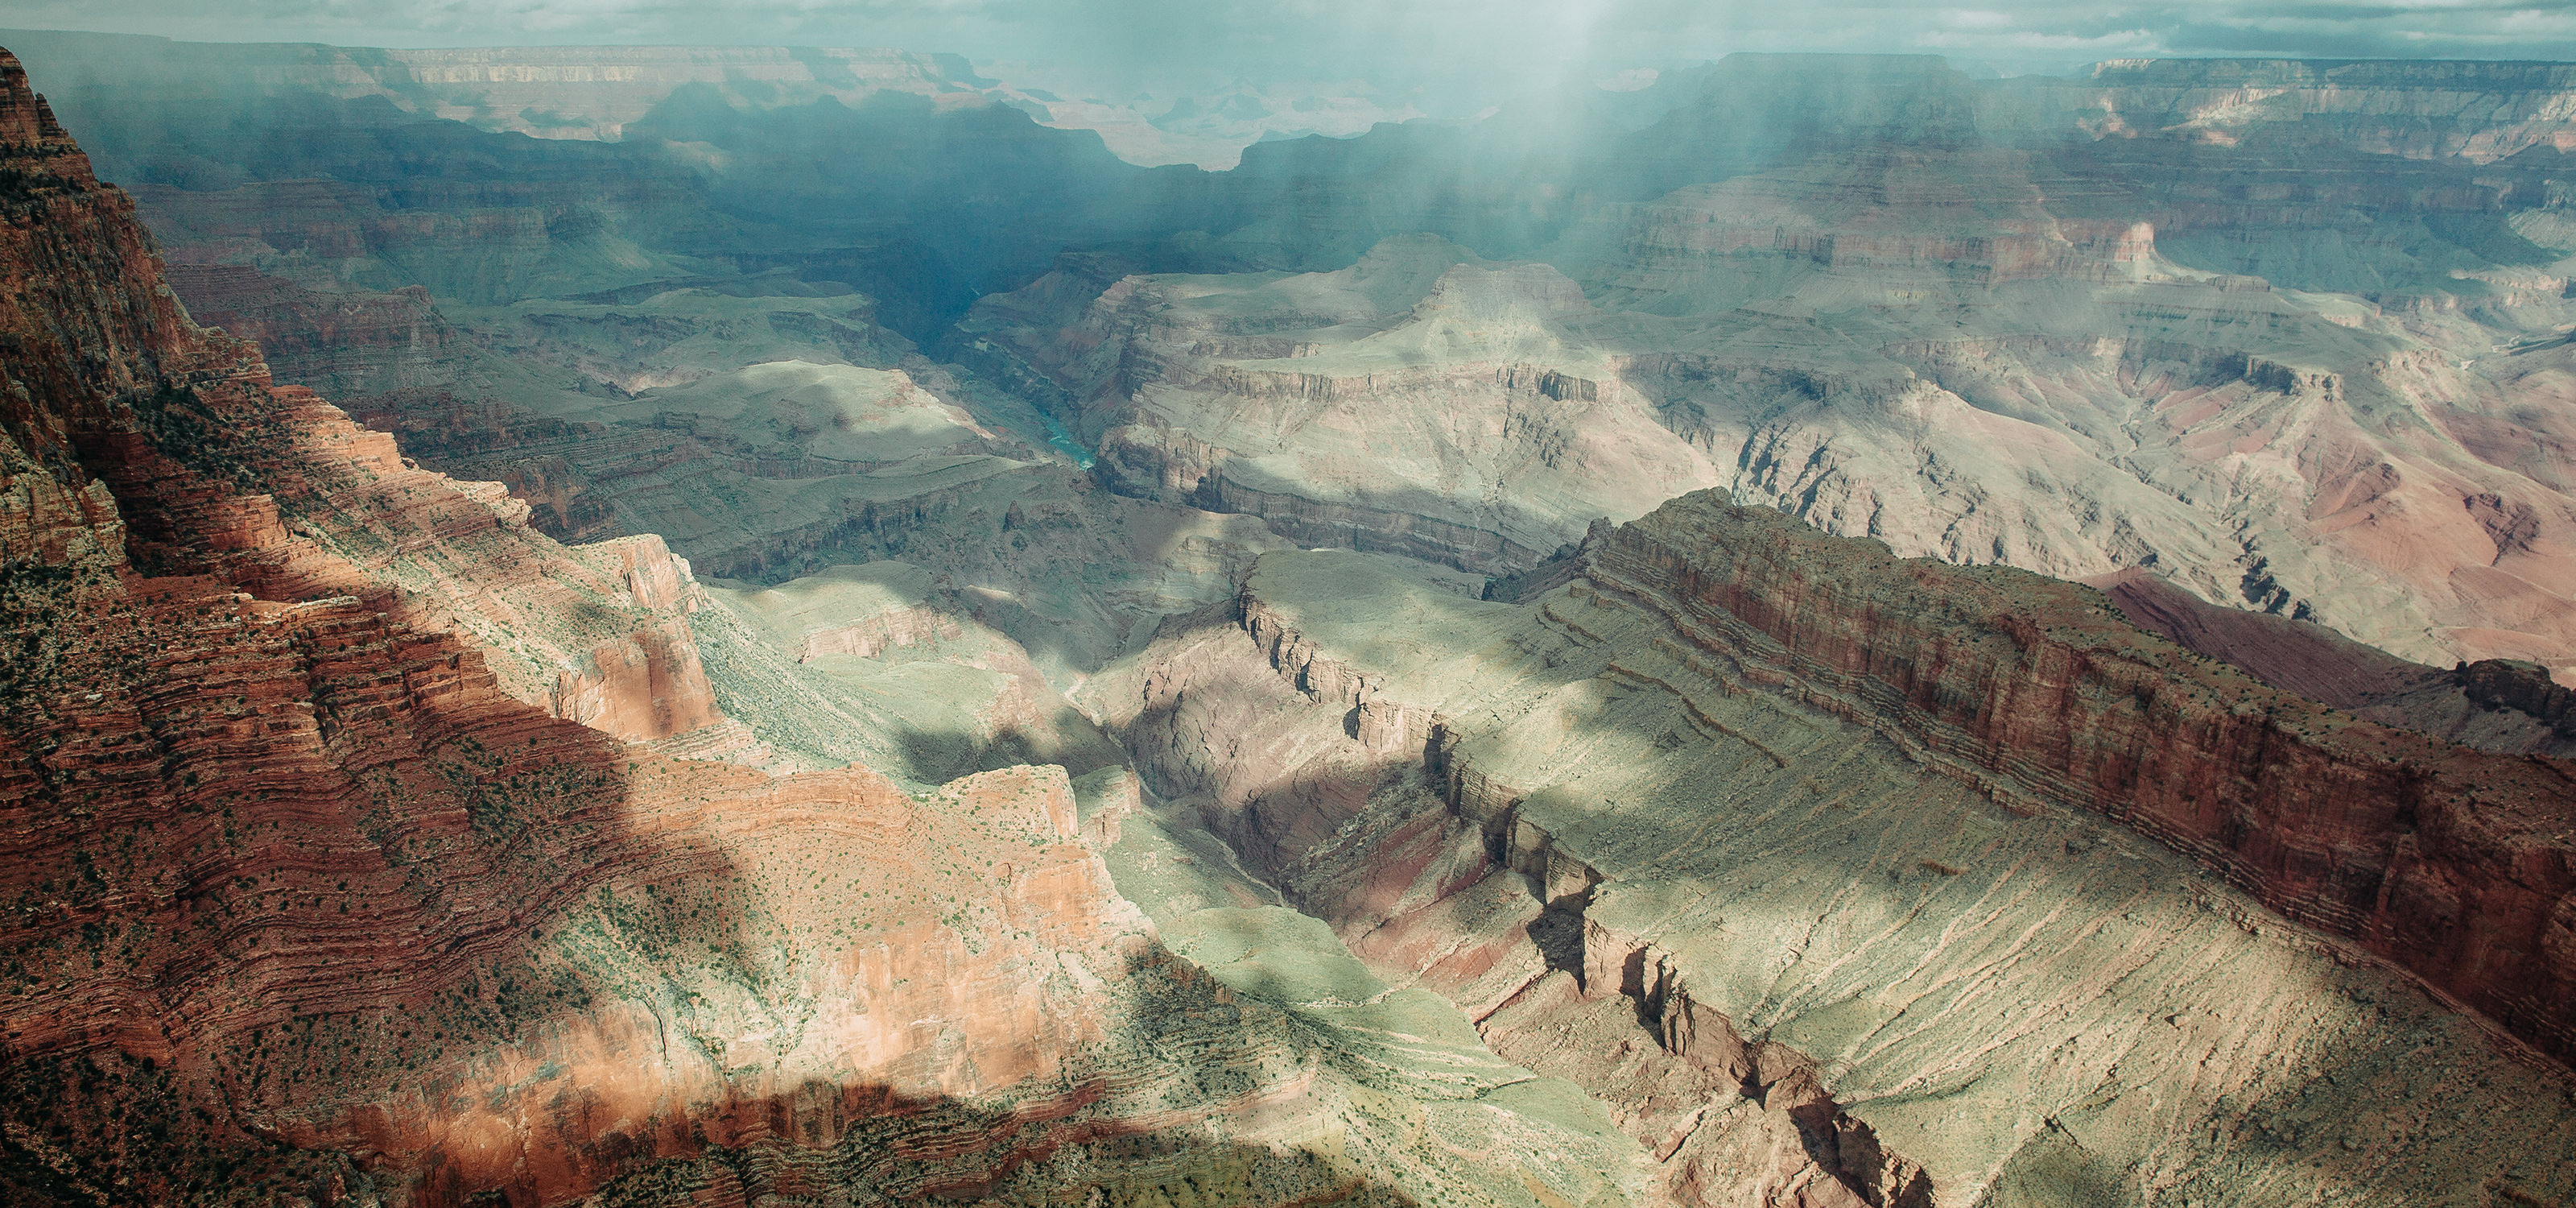 Huckberry grand canyon national park kylie turley lipan point signoff image 2